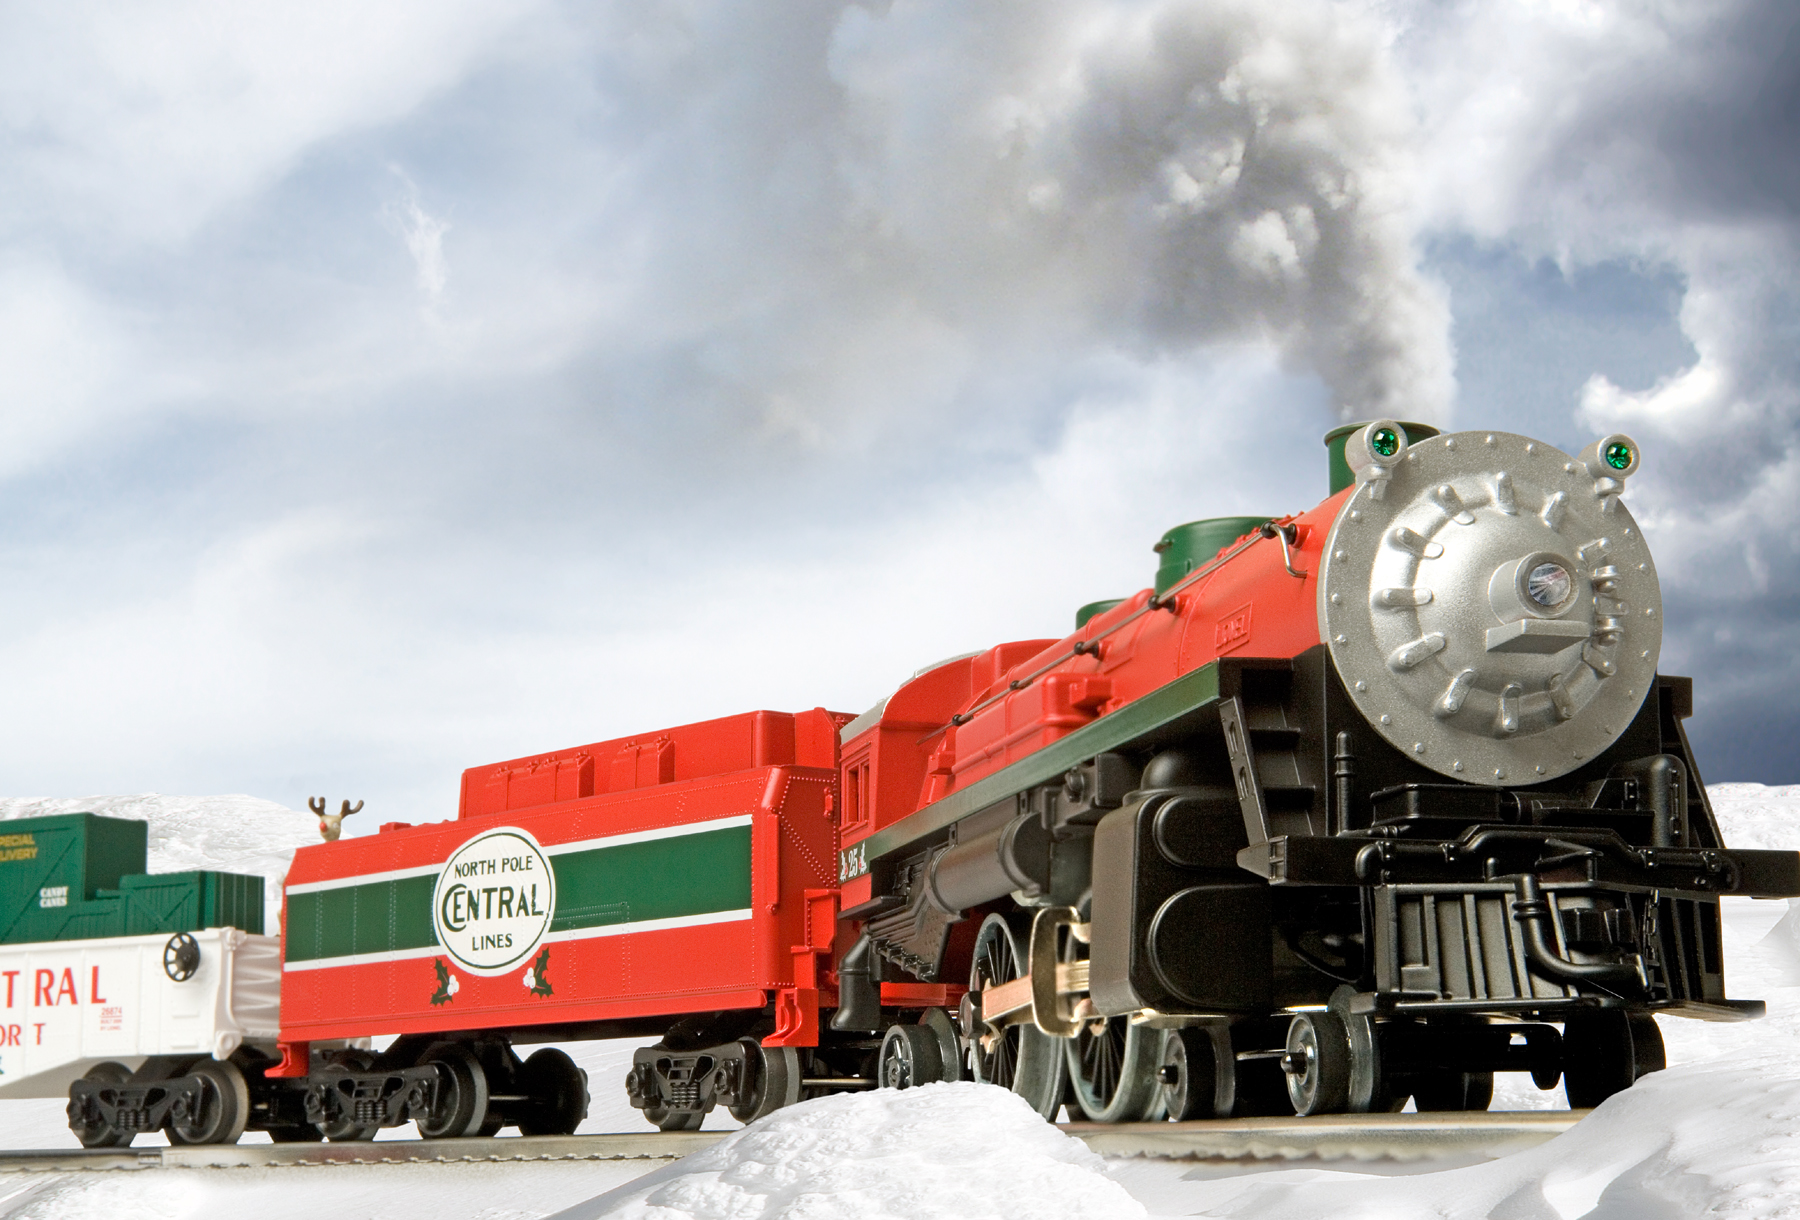 Lionel Christmas Train.North Pole Central Christmas Train Conventional 4 4 2